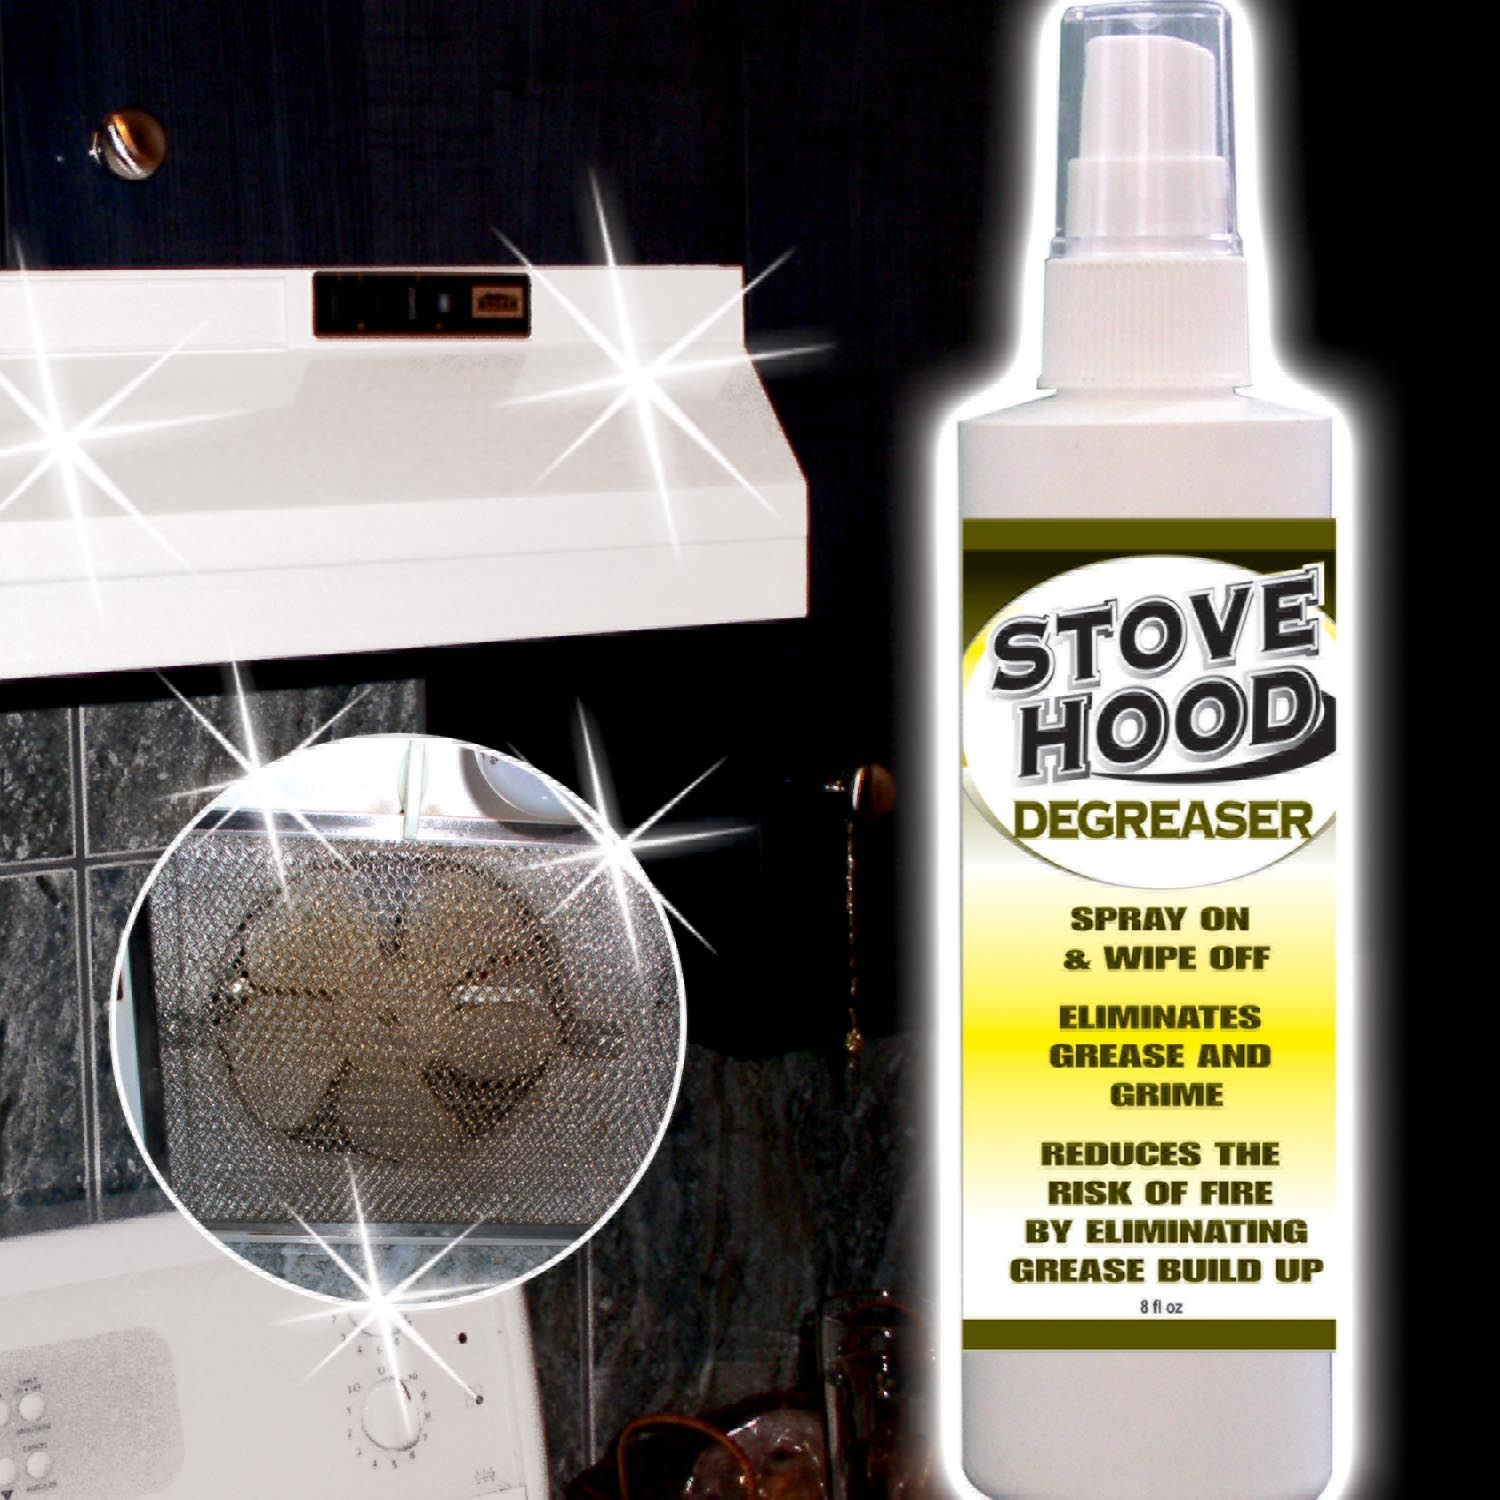 Hampton Direct Stove Hood Degreaser - Oven & Stove Top Spray/Cleaner - 8 fl. oz. at Sears.com